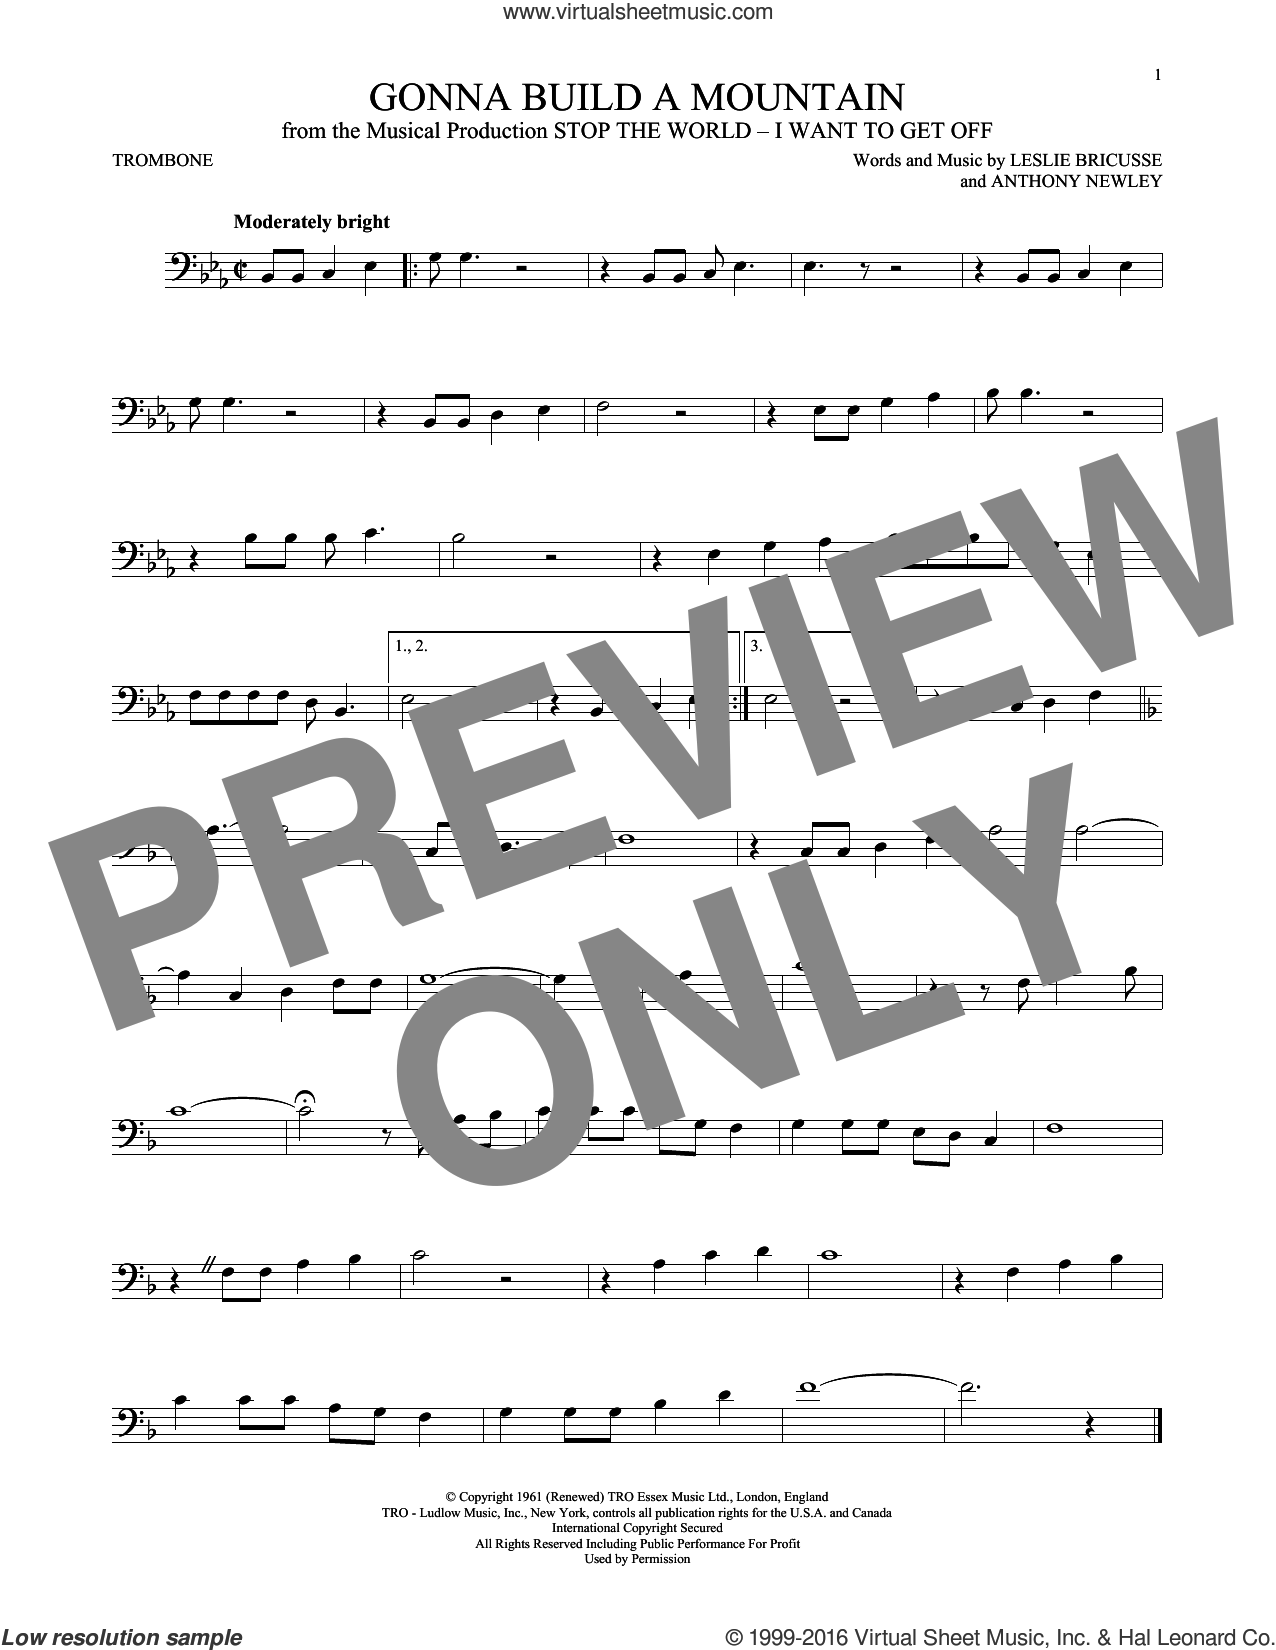 Gonna Build A Mountain sheet music for trombone solo by Leslie Bricusse and Anthony Newley, intermediate skill level